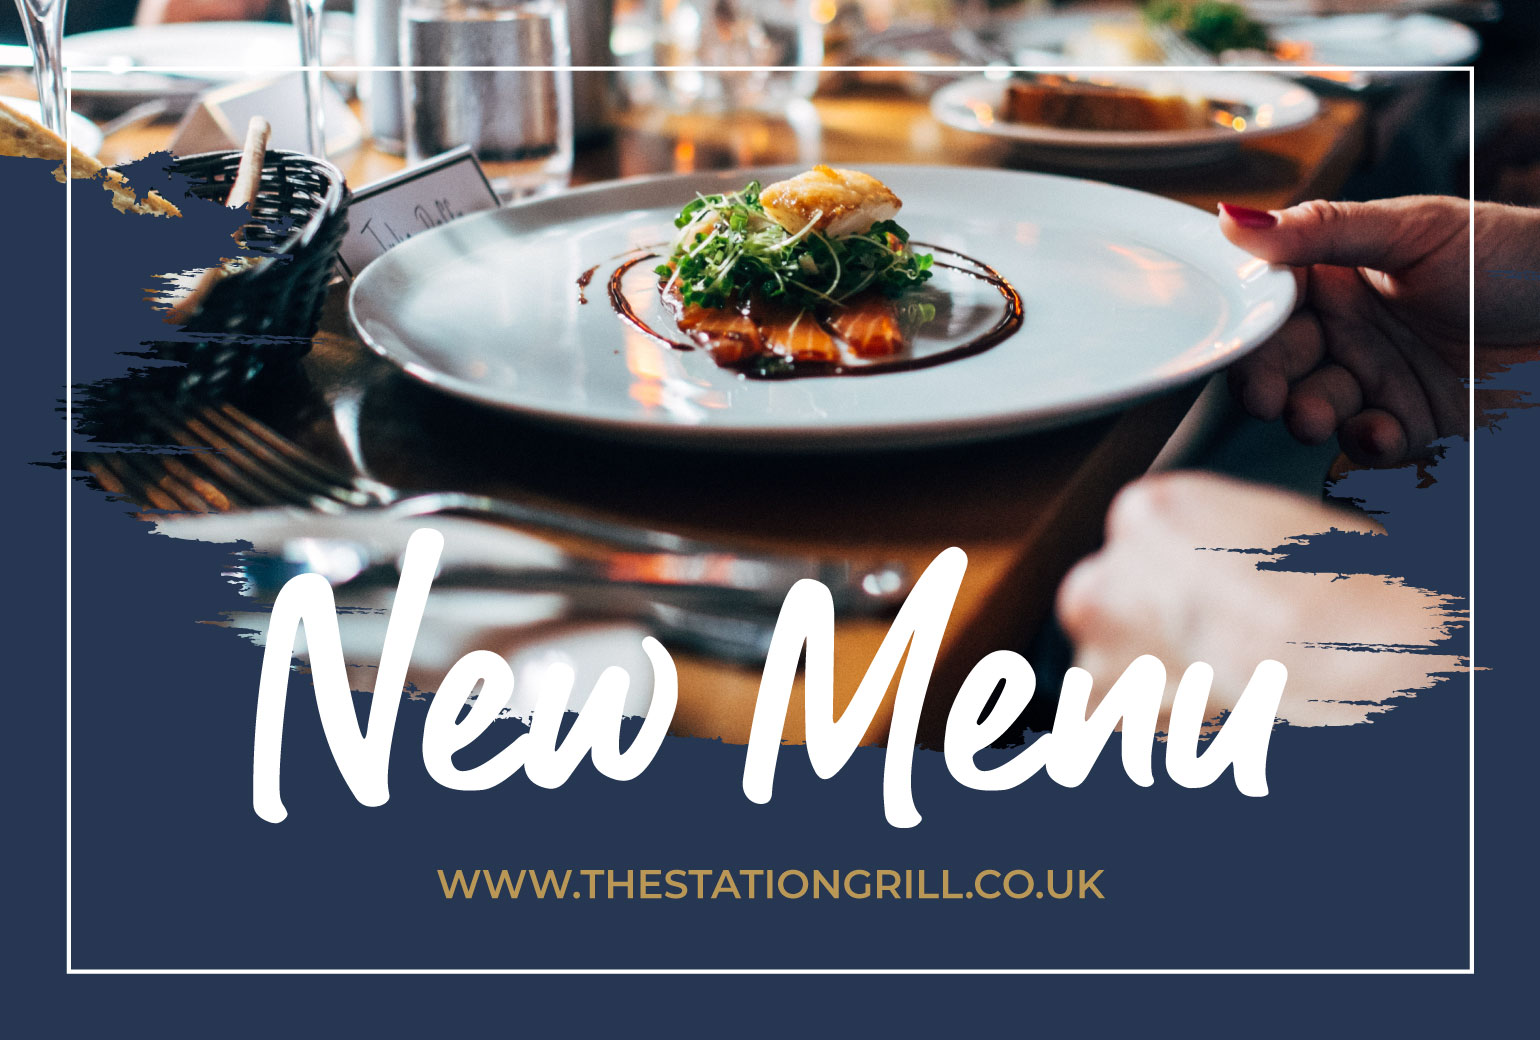 New Menu at The Station Grill